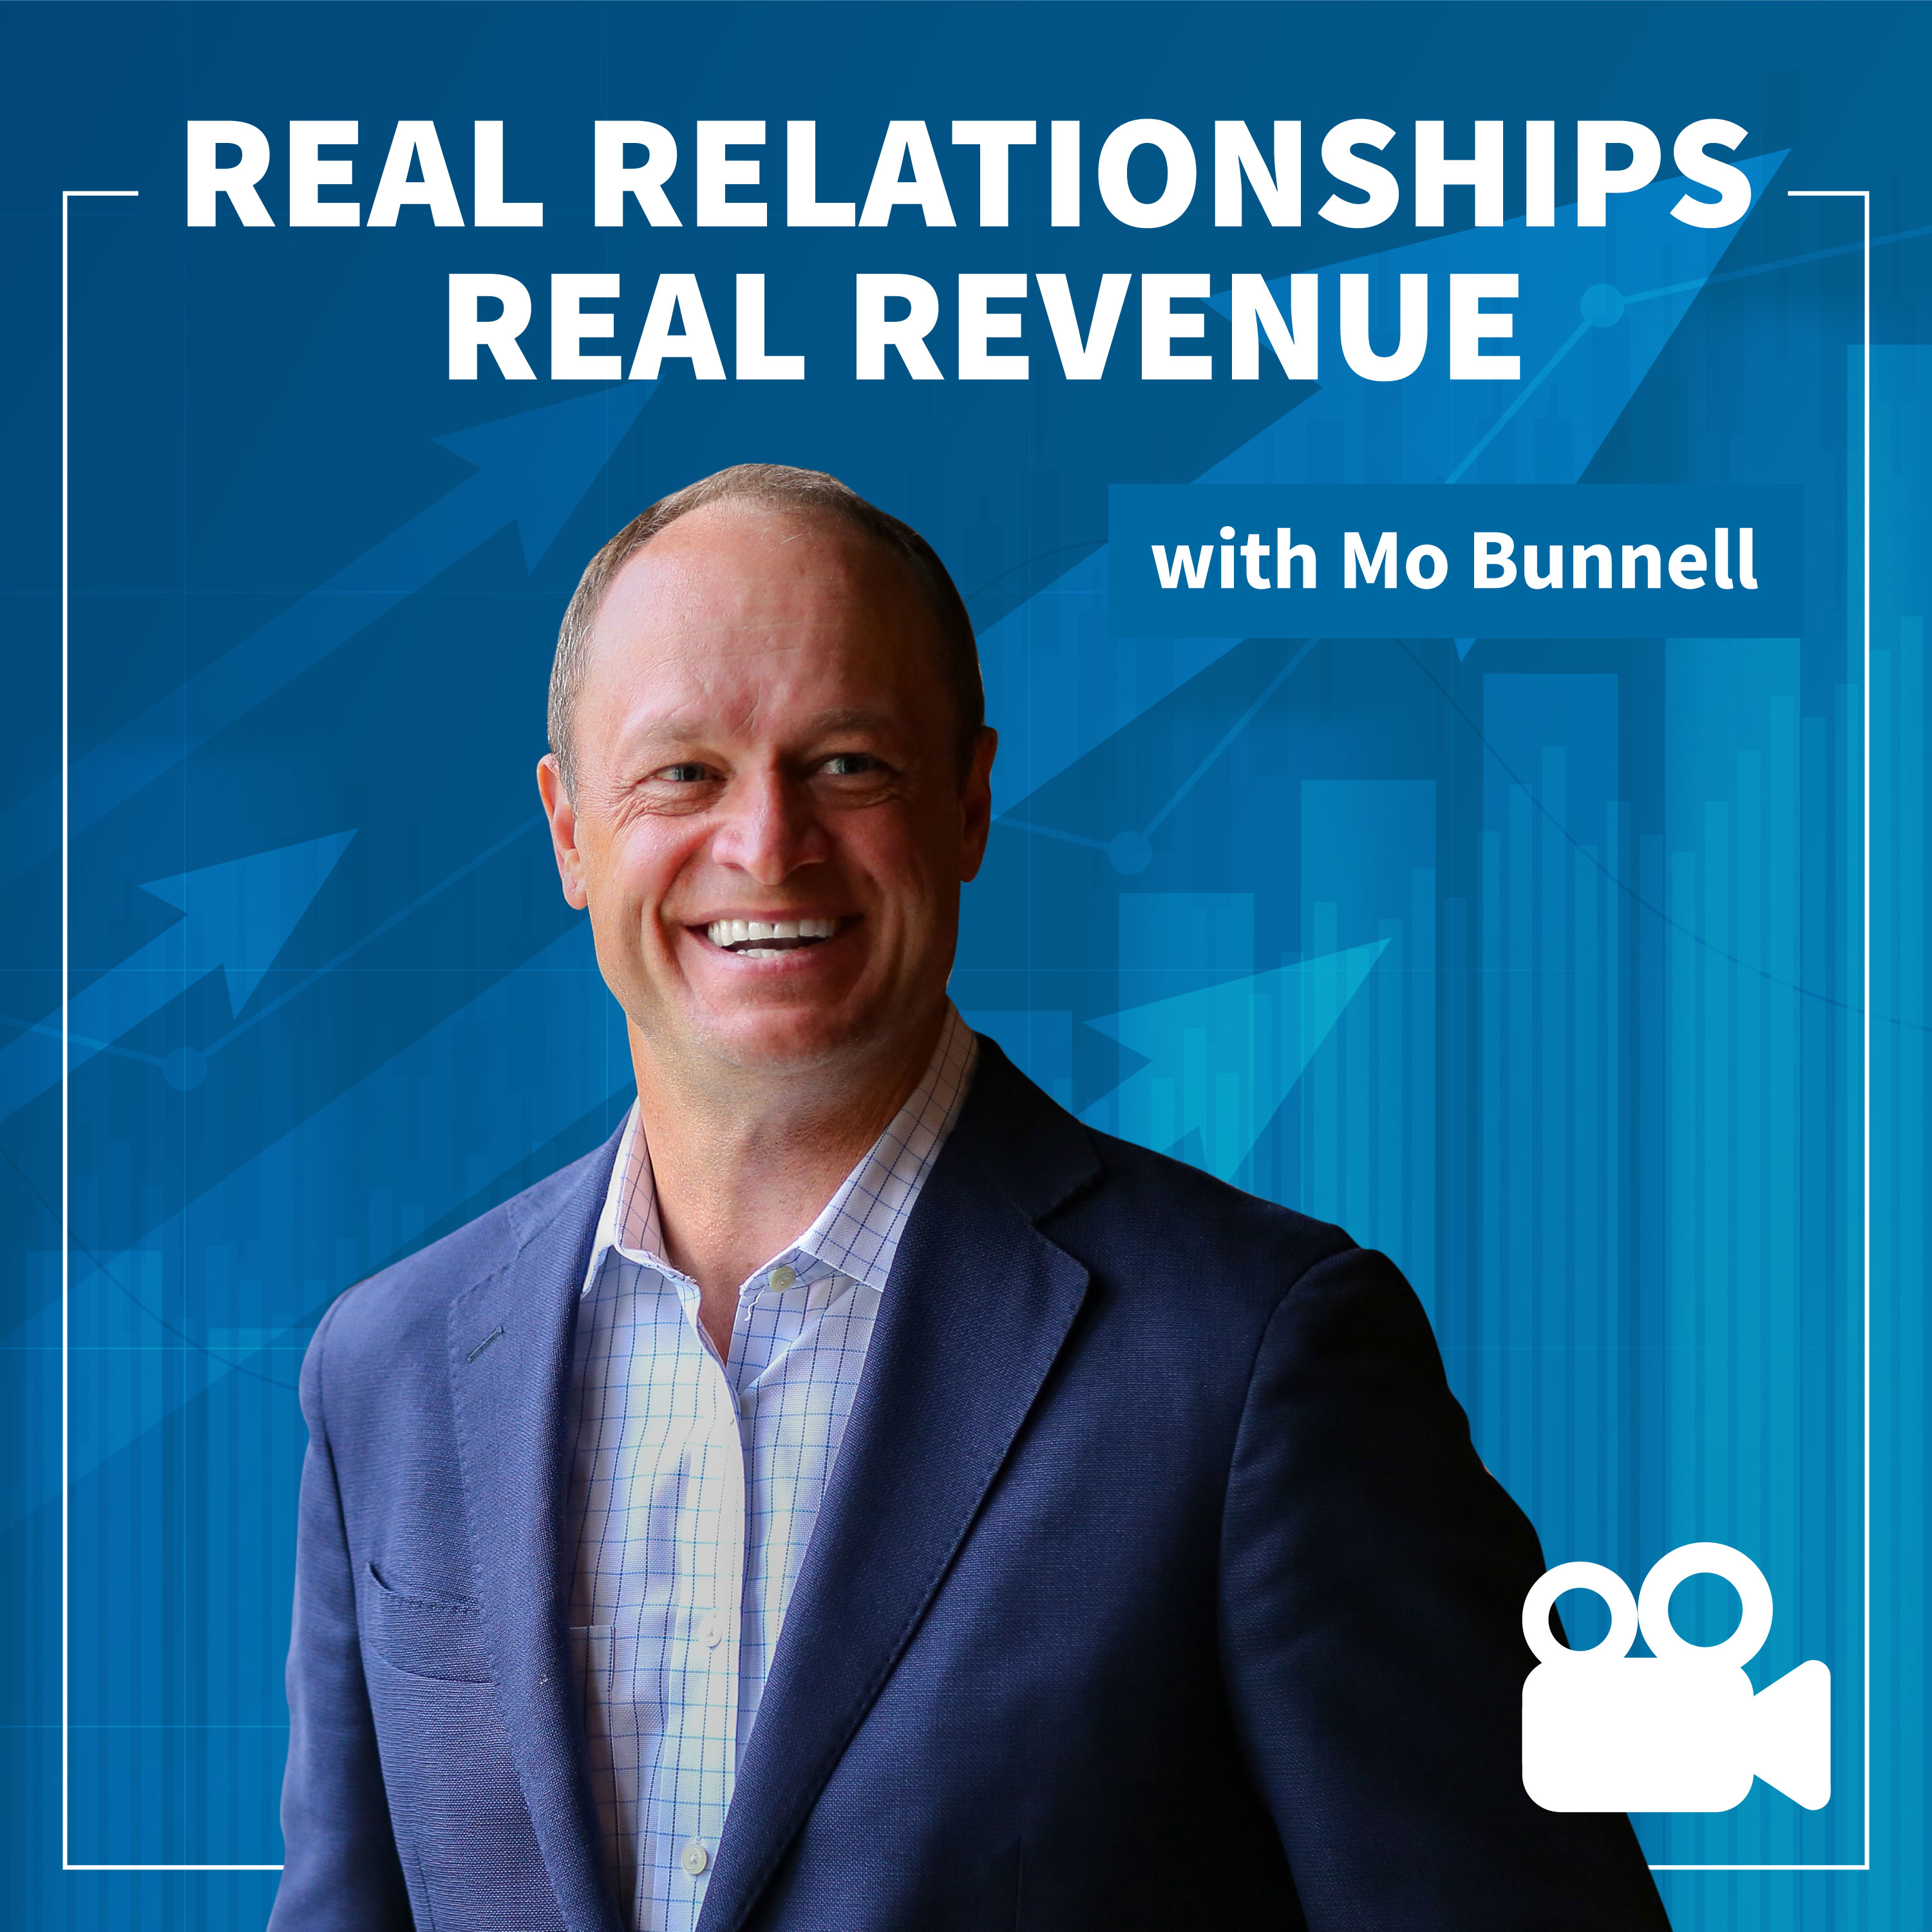 Insights From the Habits of Mike Deimler - Powerful Lessons From One of the Top Trusted Advisors in the World